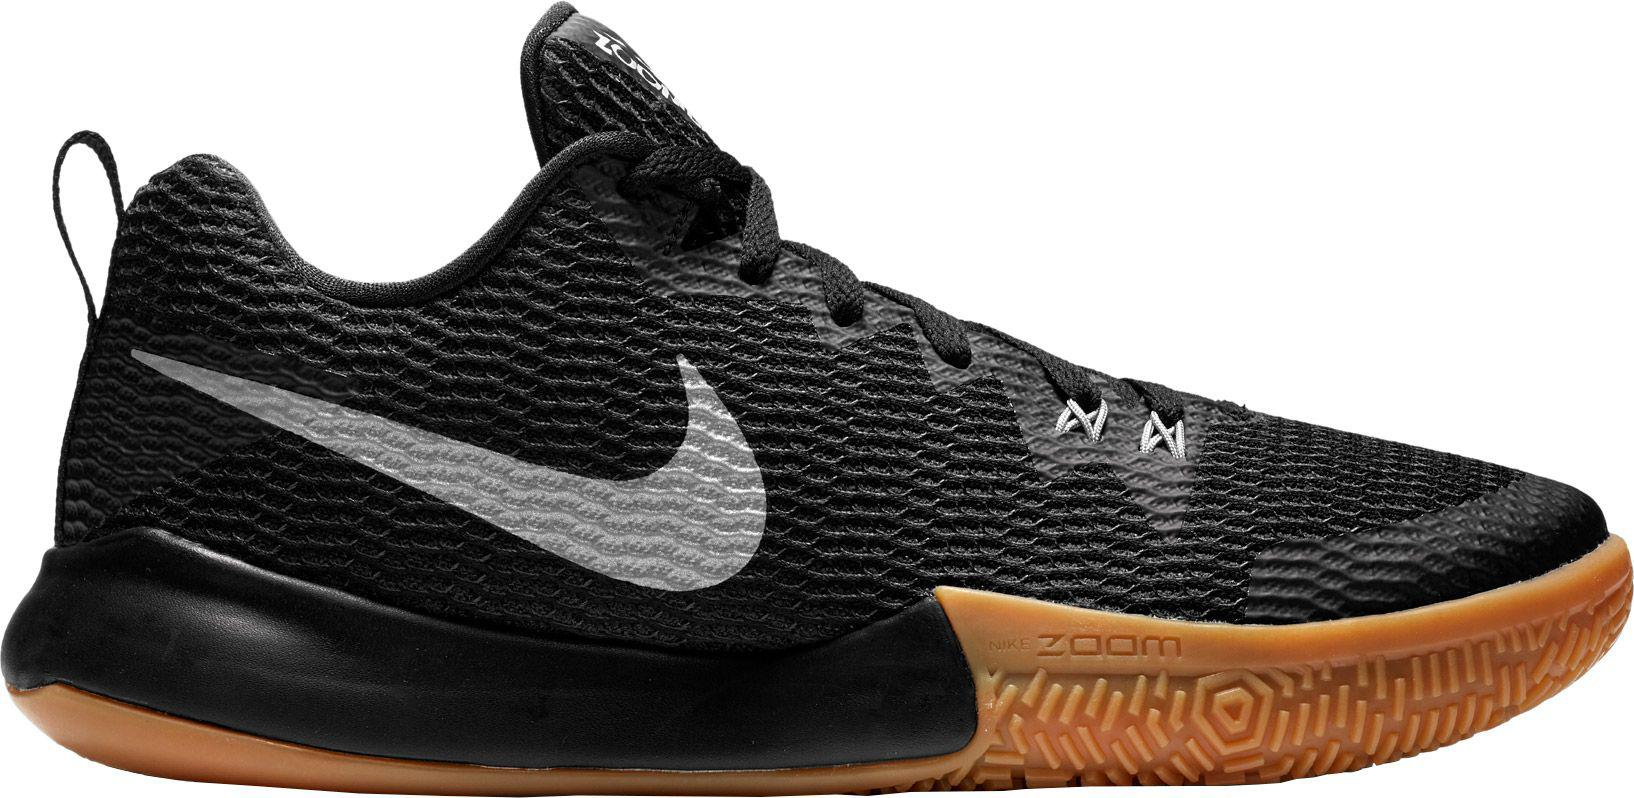 d2133cd94921 Lyst - Nike Zoom Live Ii Basketball Shoes in Black for Men